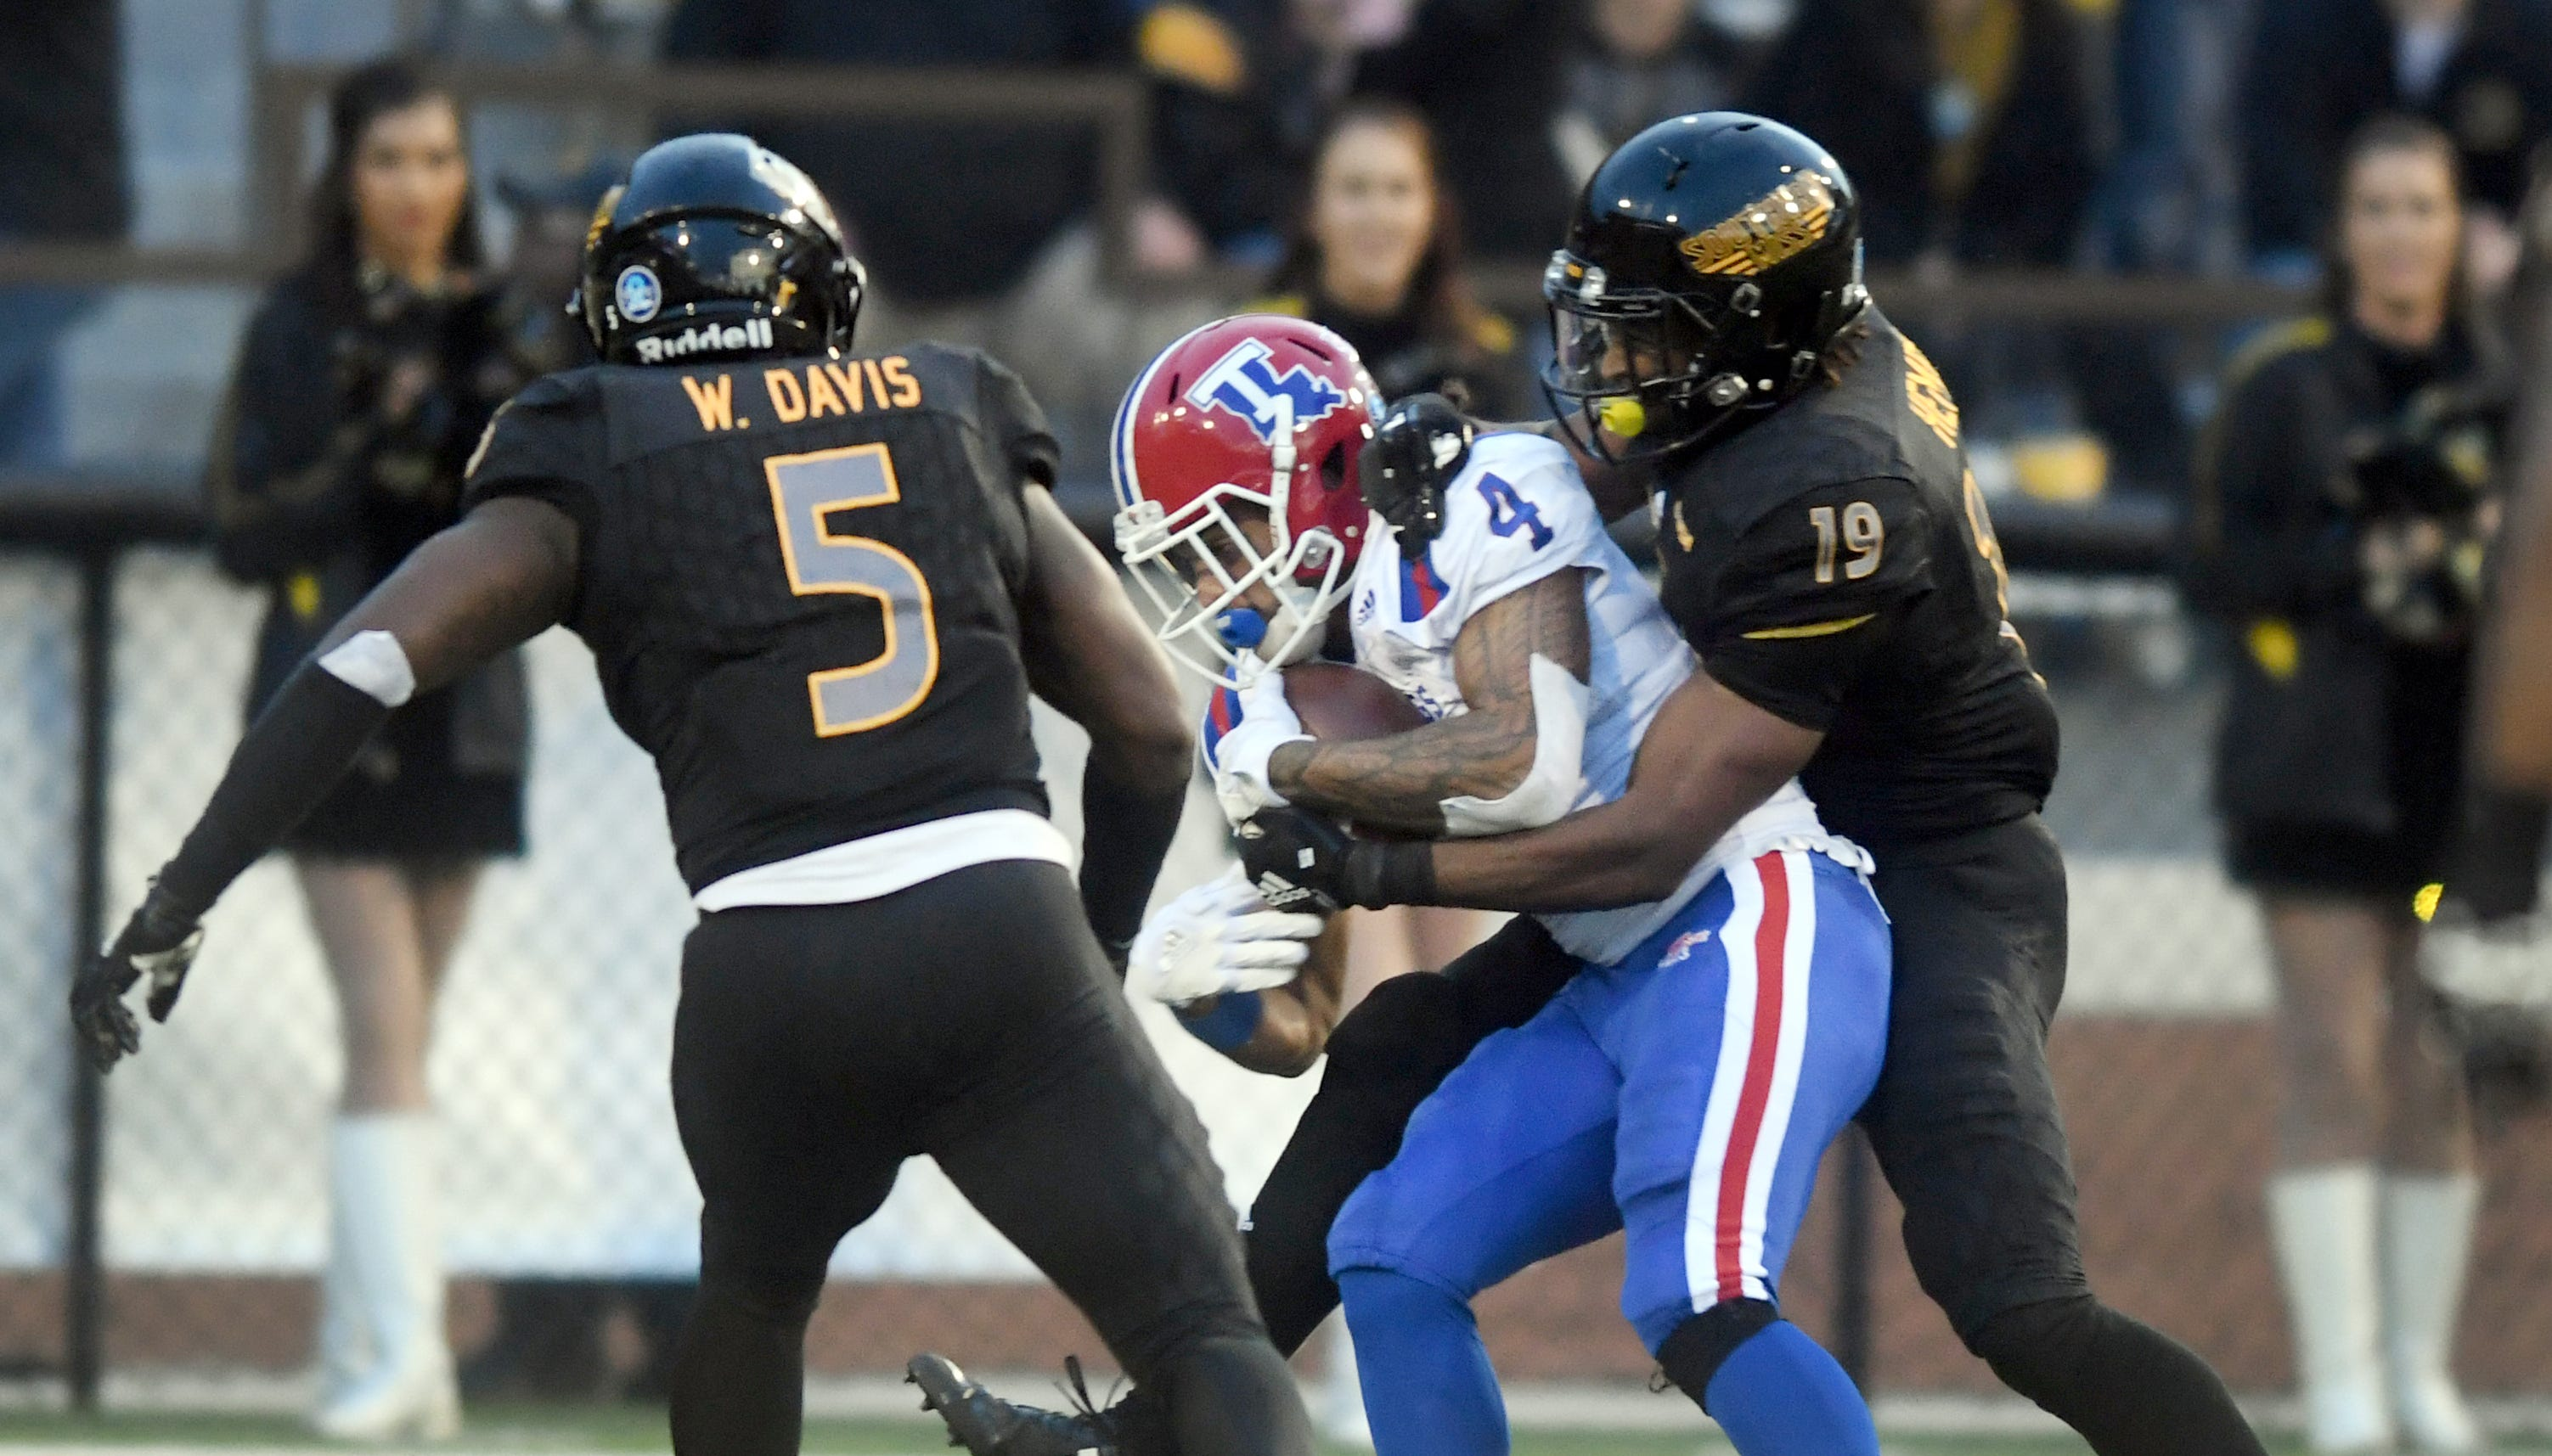 Southern Miss defenders Ky'el Hemby (19) and Waiden Davis (5) stop a player in a game against Louisiana Tech at M.M. Roberts Stadium on Saturday, November 17, 2018.